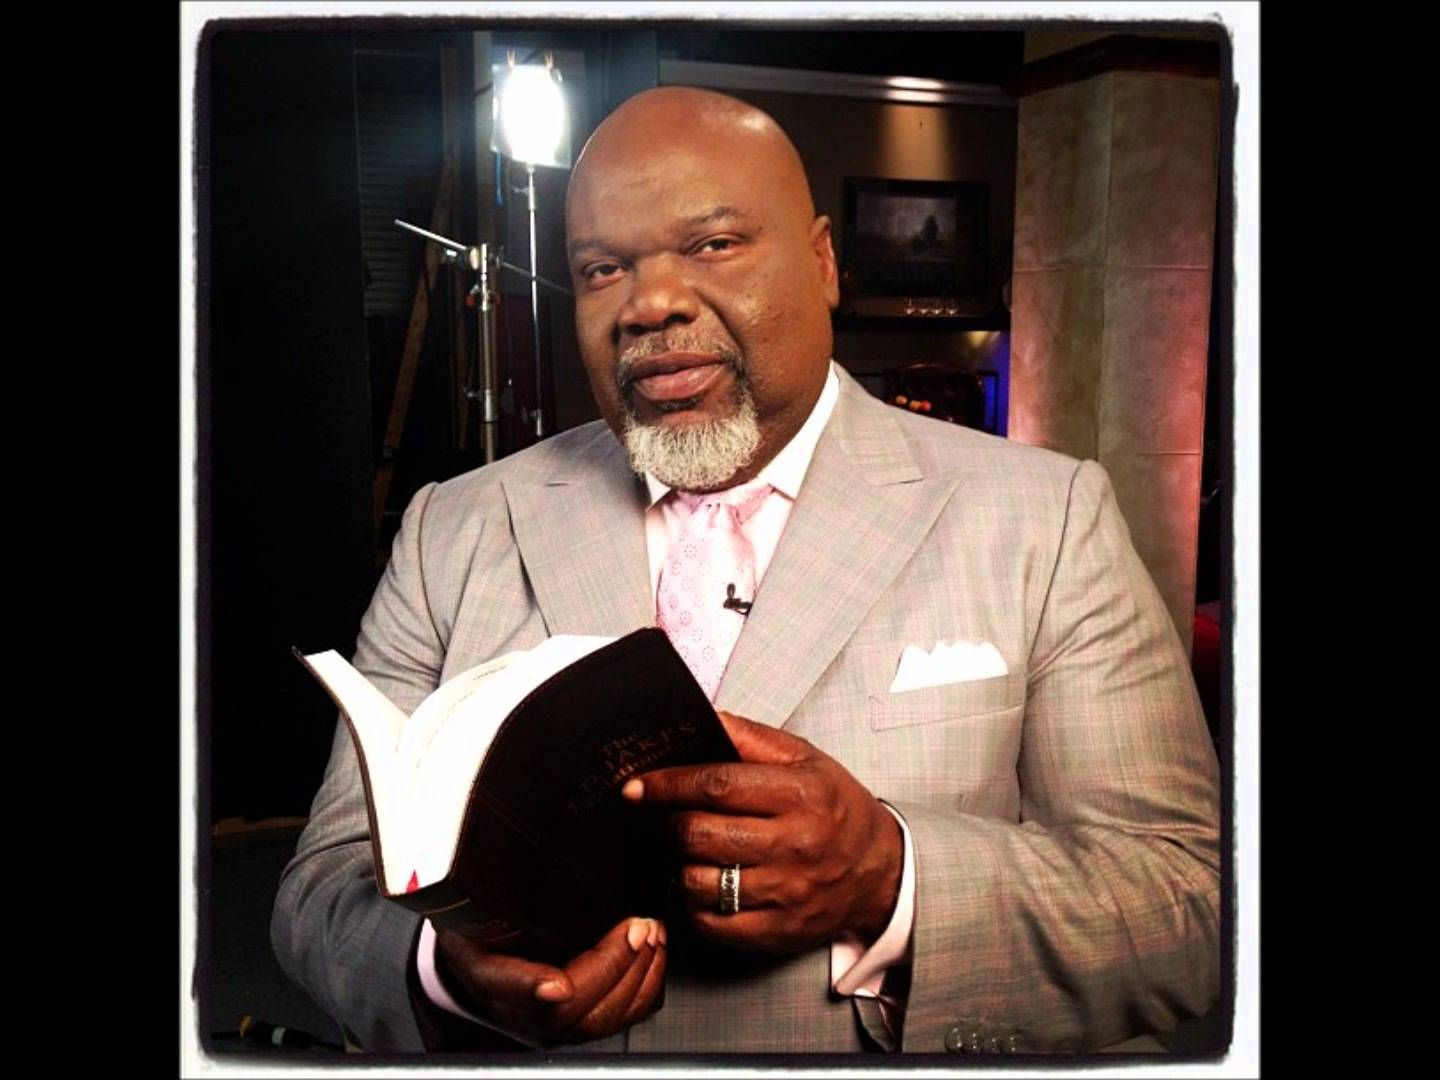 Bishop T.D Jakes Sermons 2015 - In The Presence Of Beasts